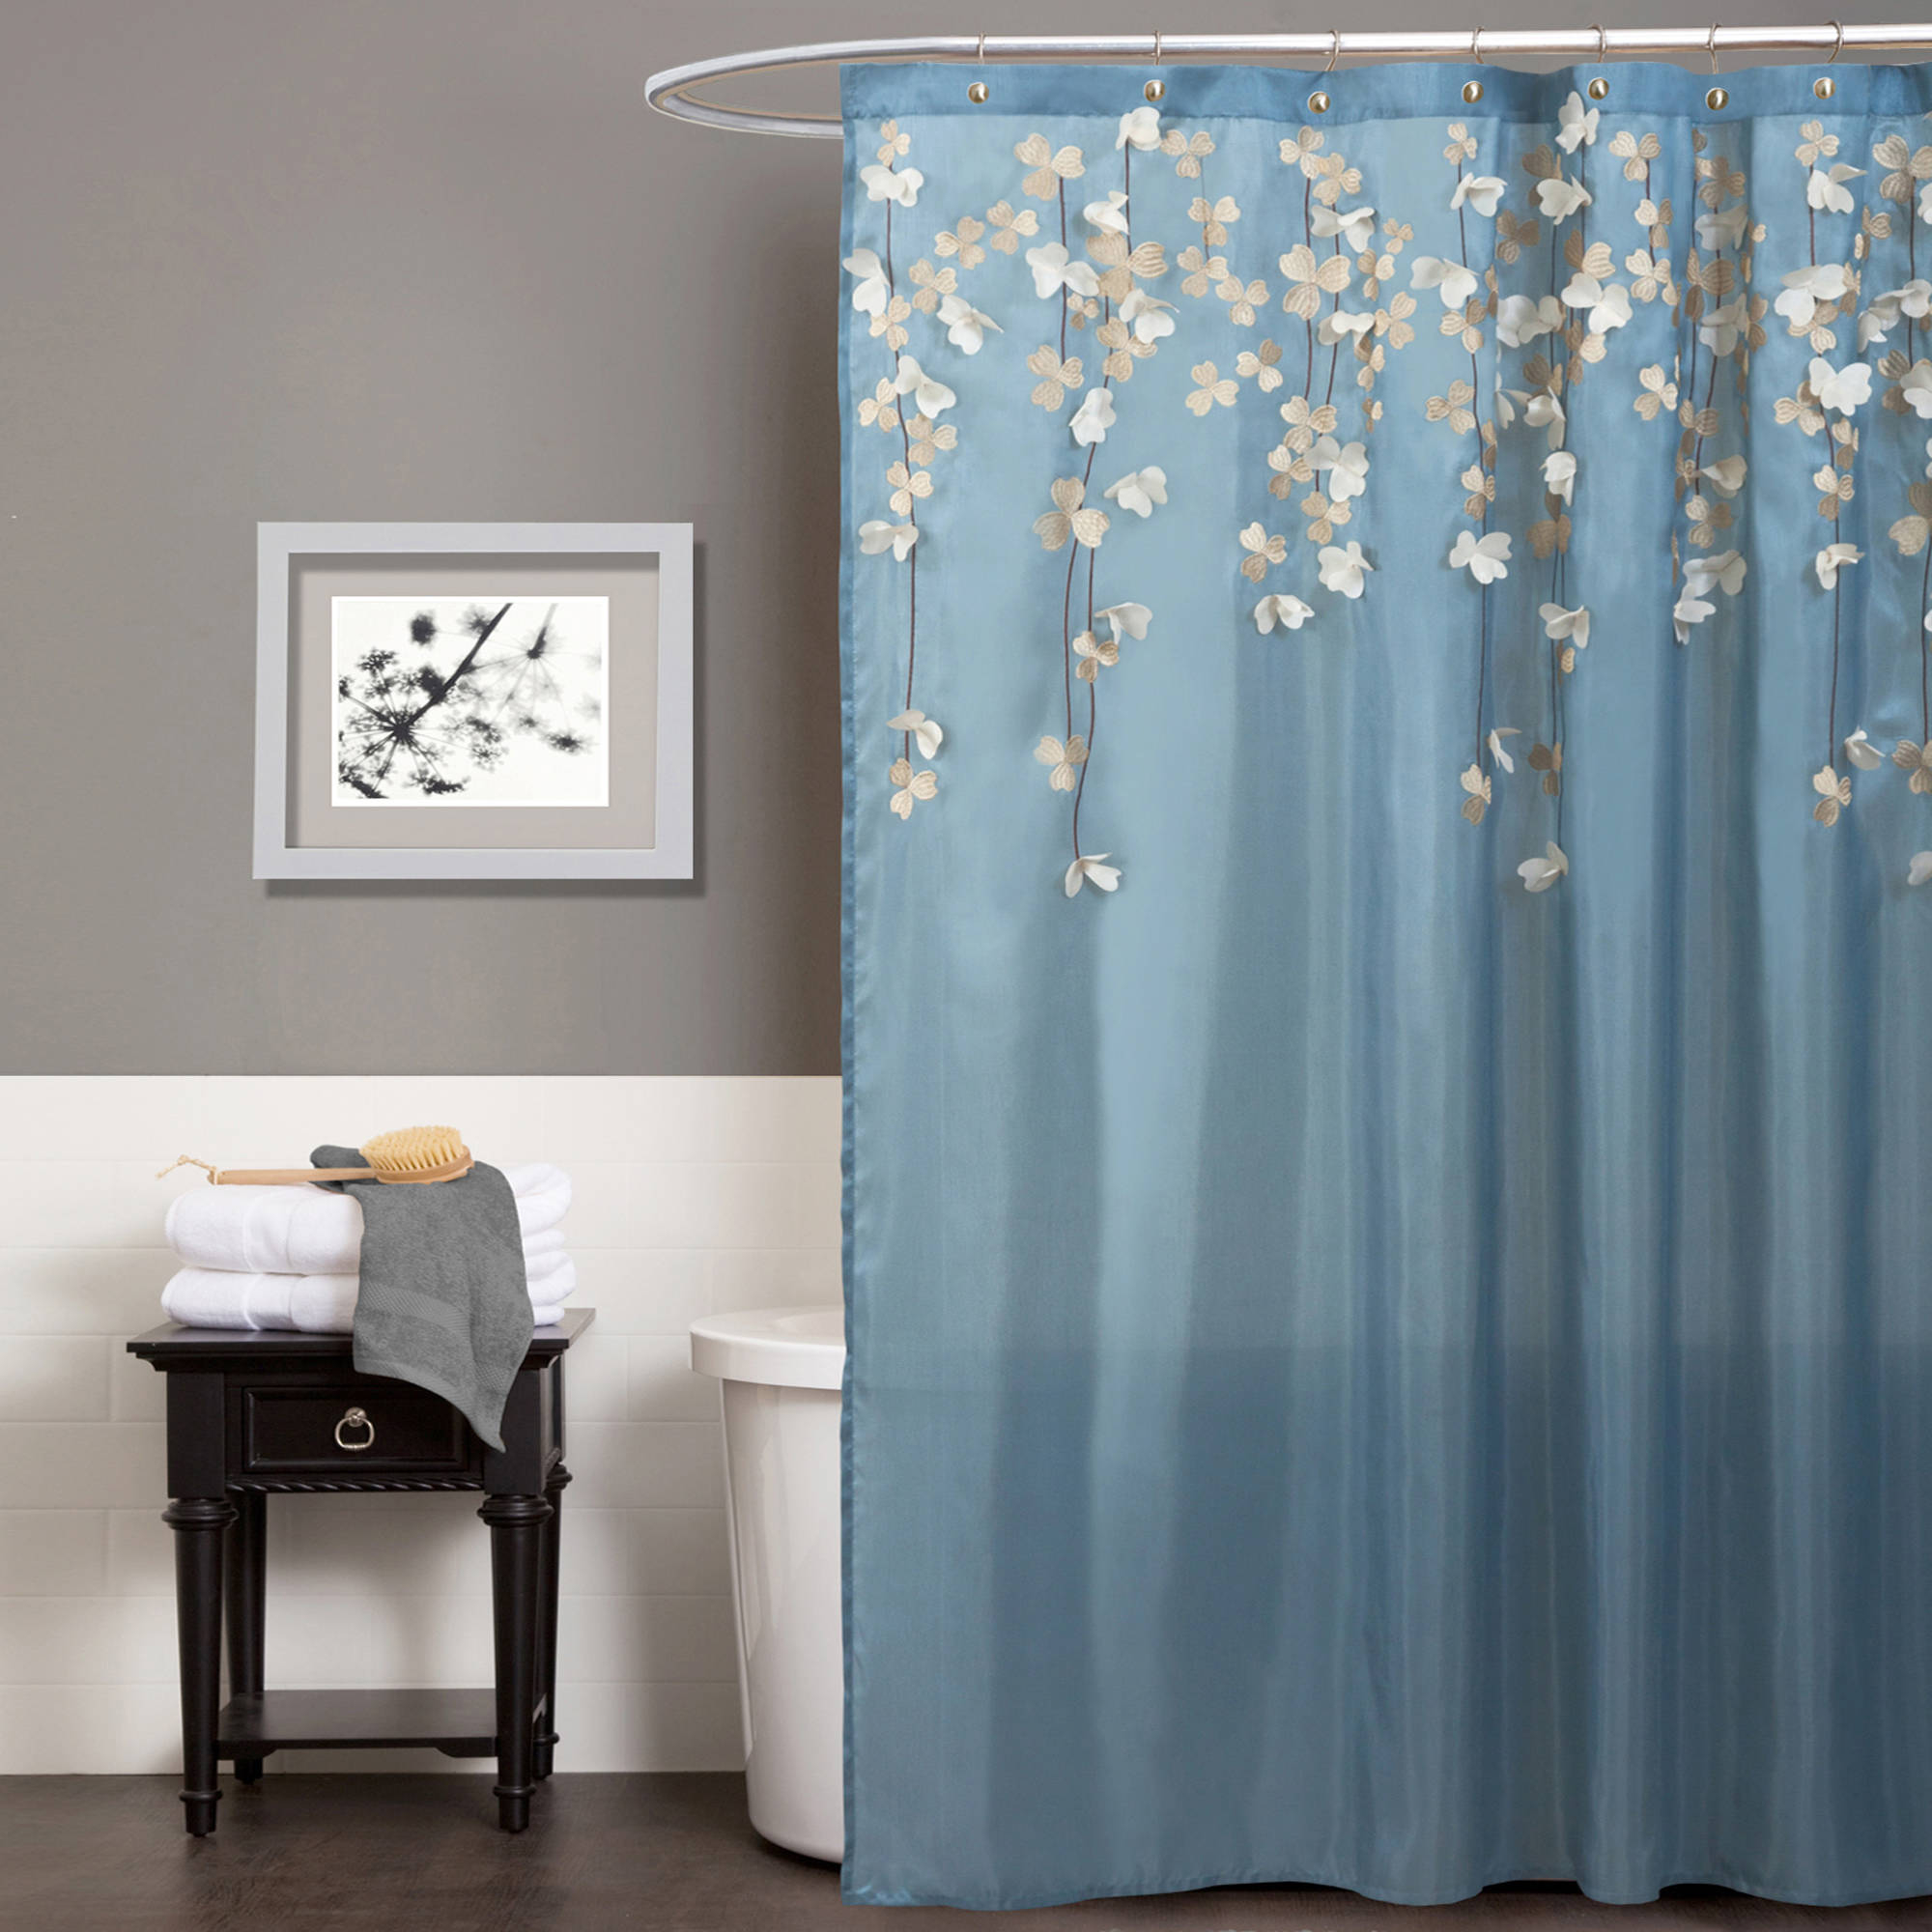 Shower Curtains Walmart regarding measurements 2000 X 2000